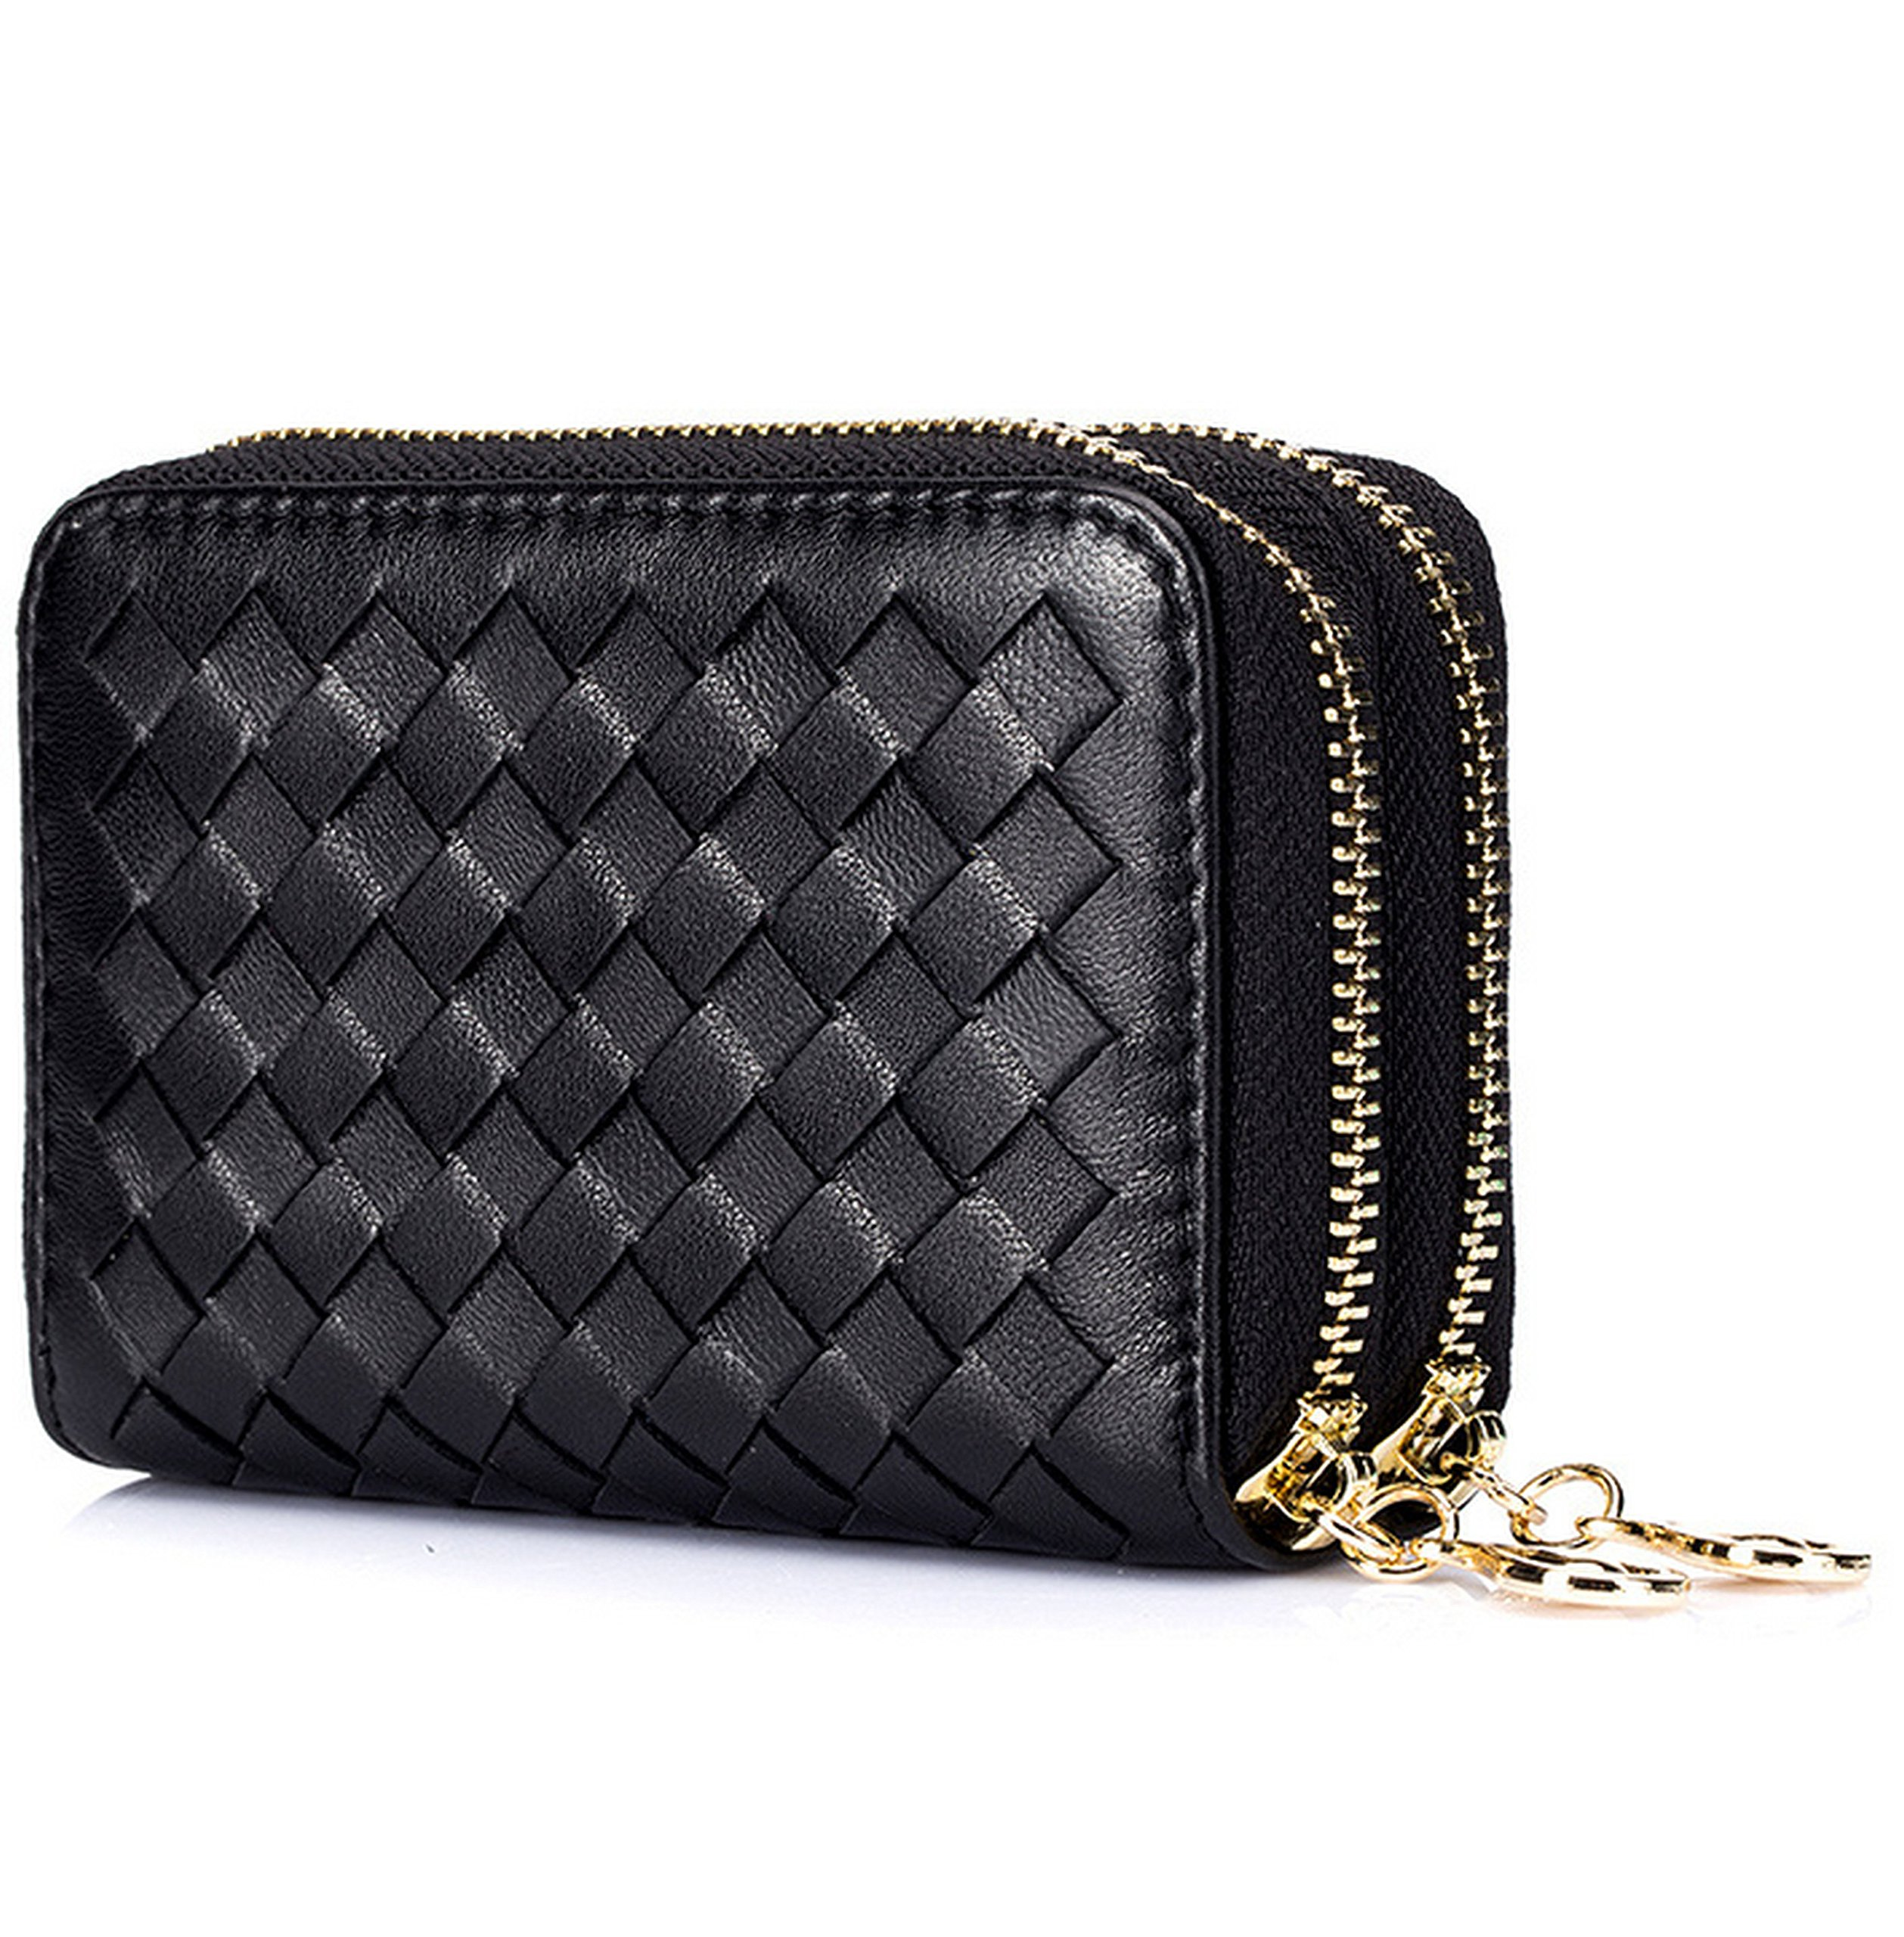 Women's RFID Blocking Leather Secure Credit Card Holder Zipper Wallet, Free Keychain and Gift Box, Black, b6w009bk